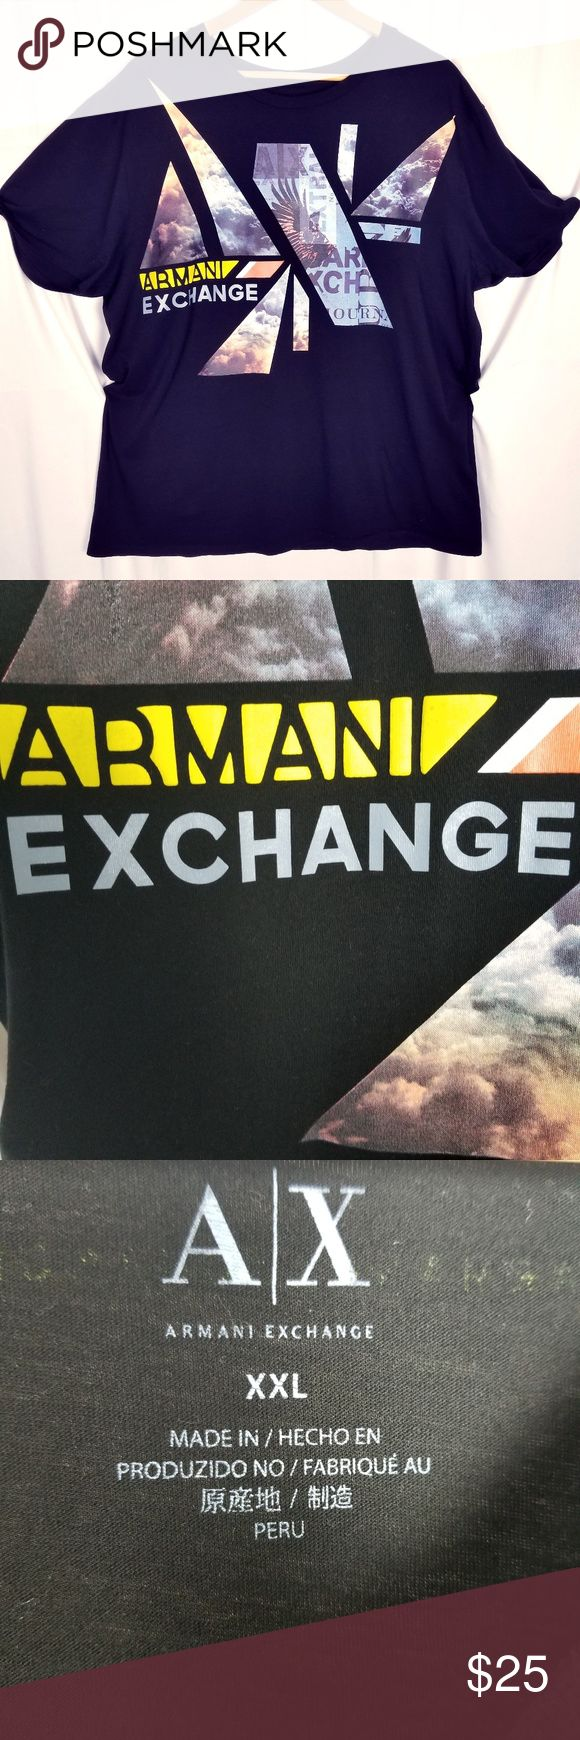 Armani Exchange T-Shirt Size XXL  Excellent Condition Any inquiries message me A/X Armani Exchange Shirts Tees - Short Sleeve